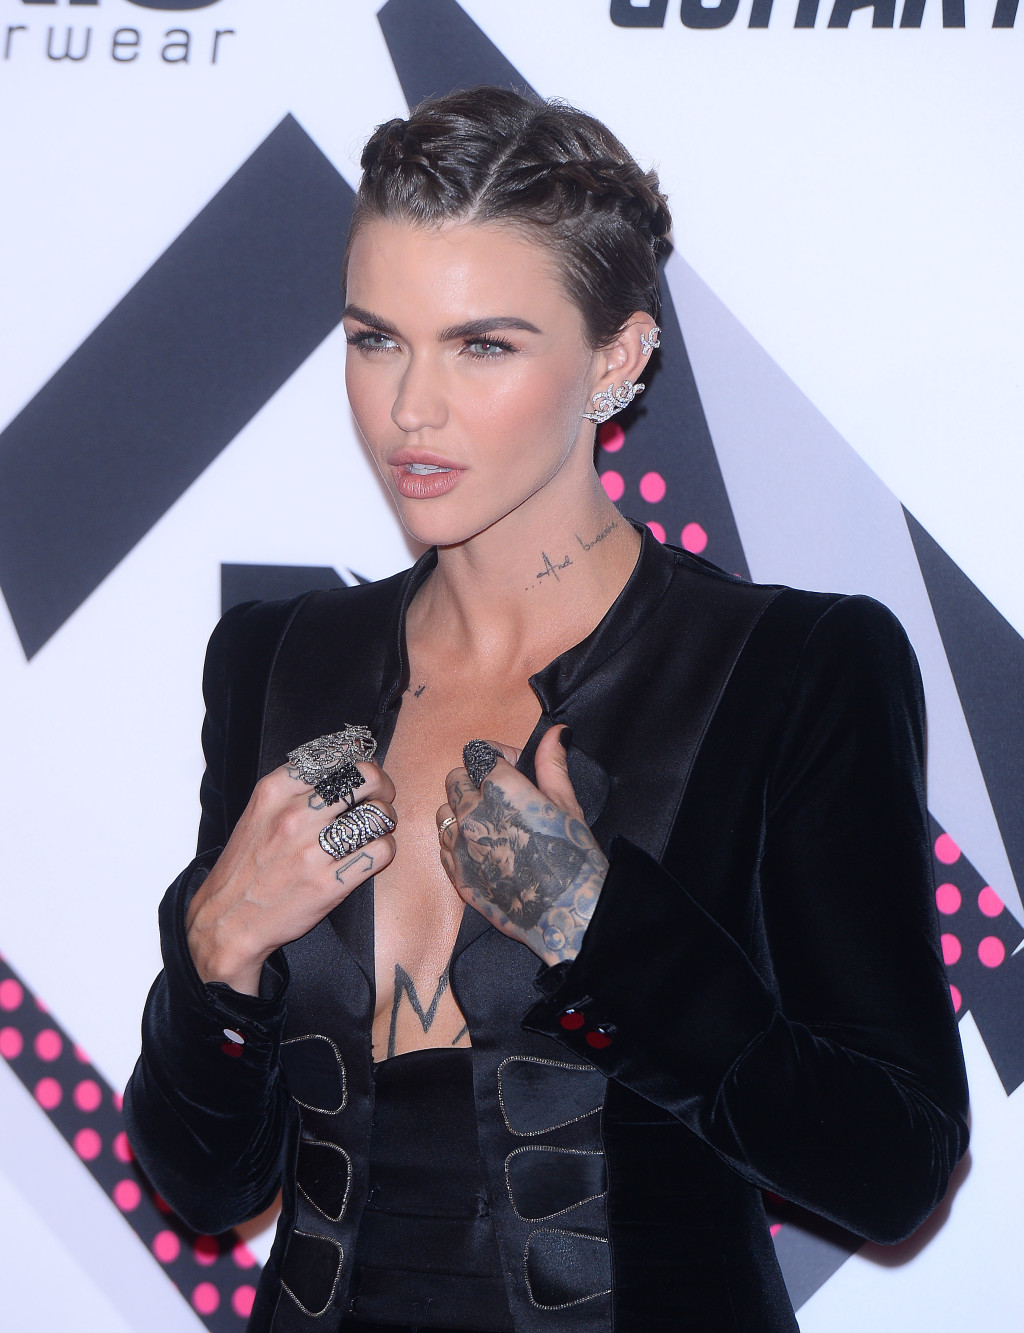 Ruby Rose's Ear Jewelry Game Is on Point